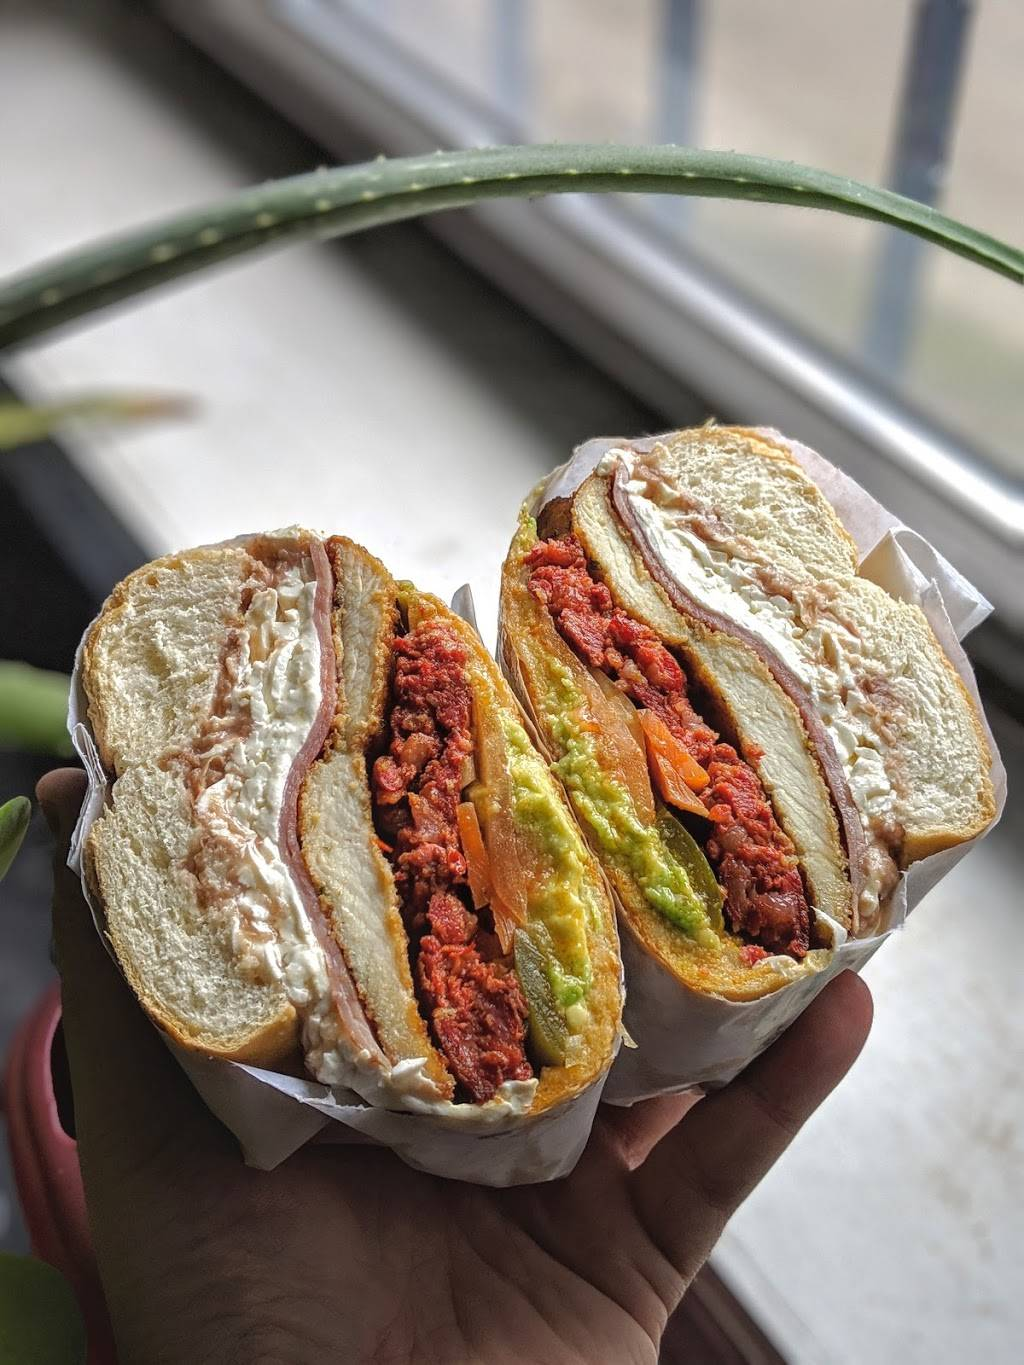 Eden Deli Grocery | restaurant | 408 47th St, Brooklyn, NY 11220, USA | 7184391144 OR +1 718-439-1144